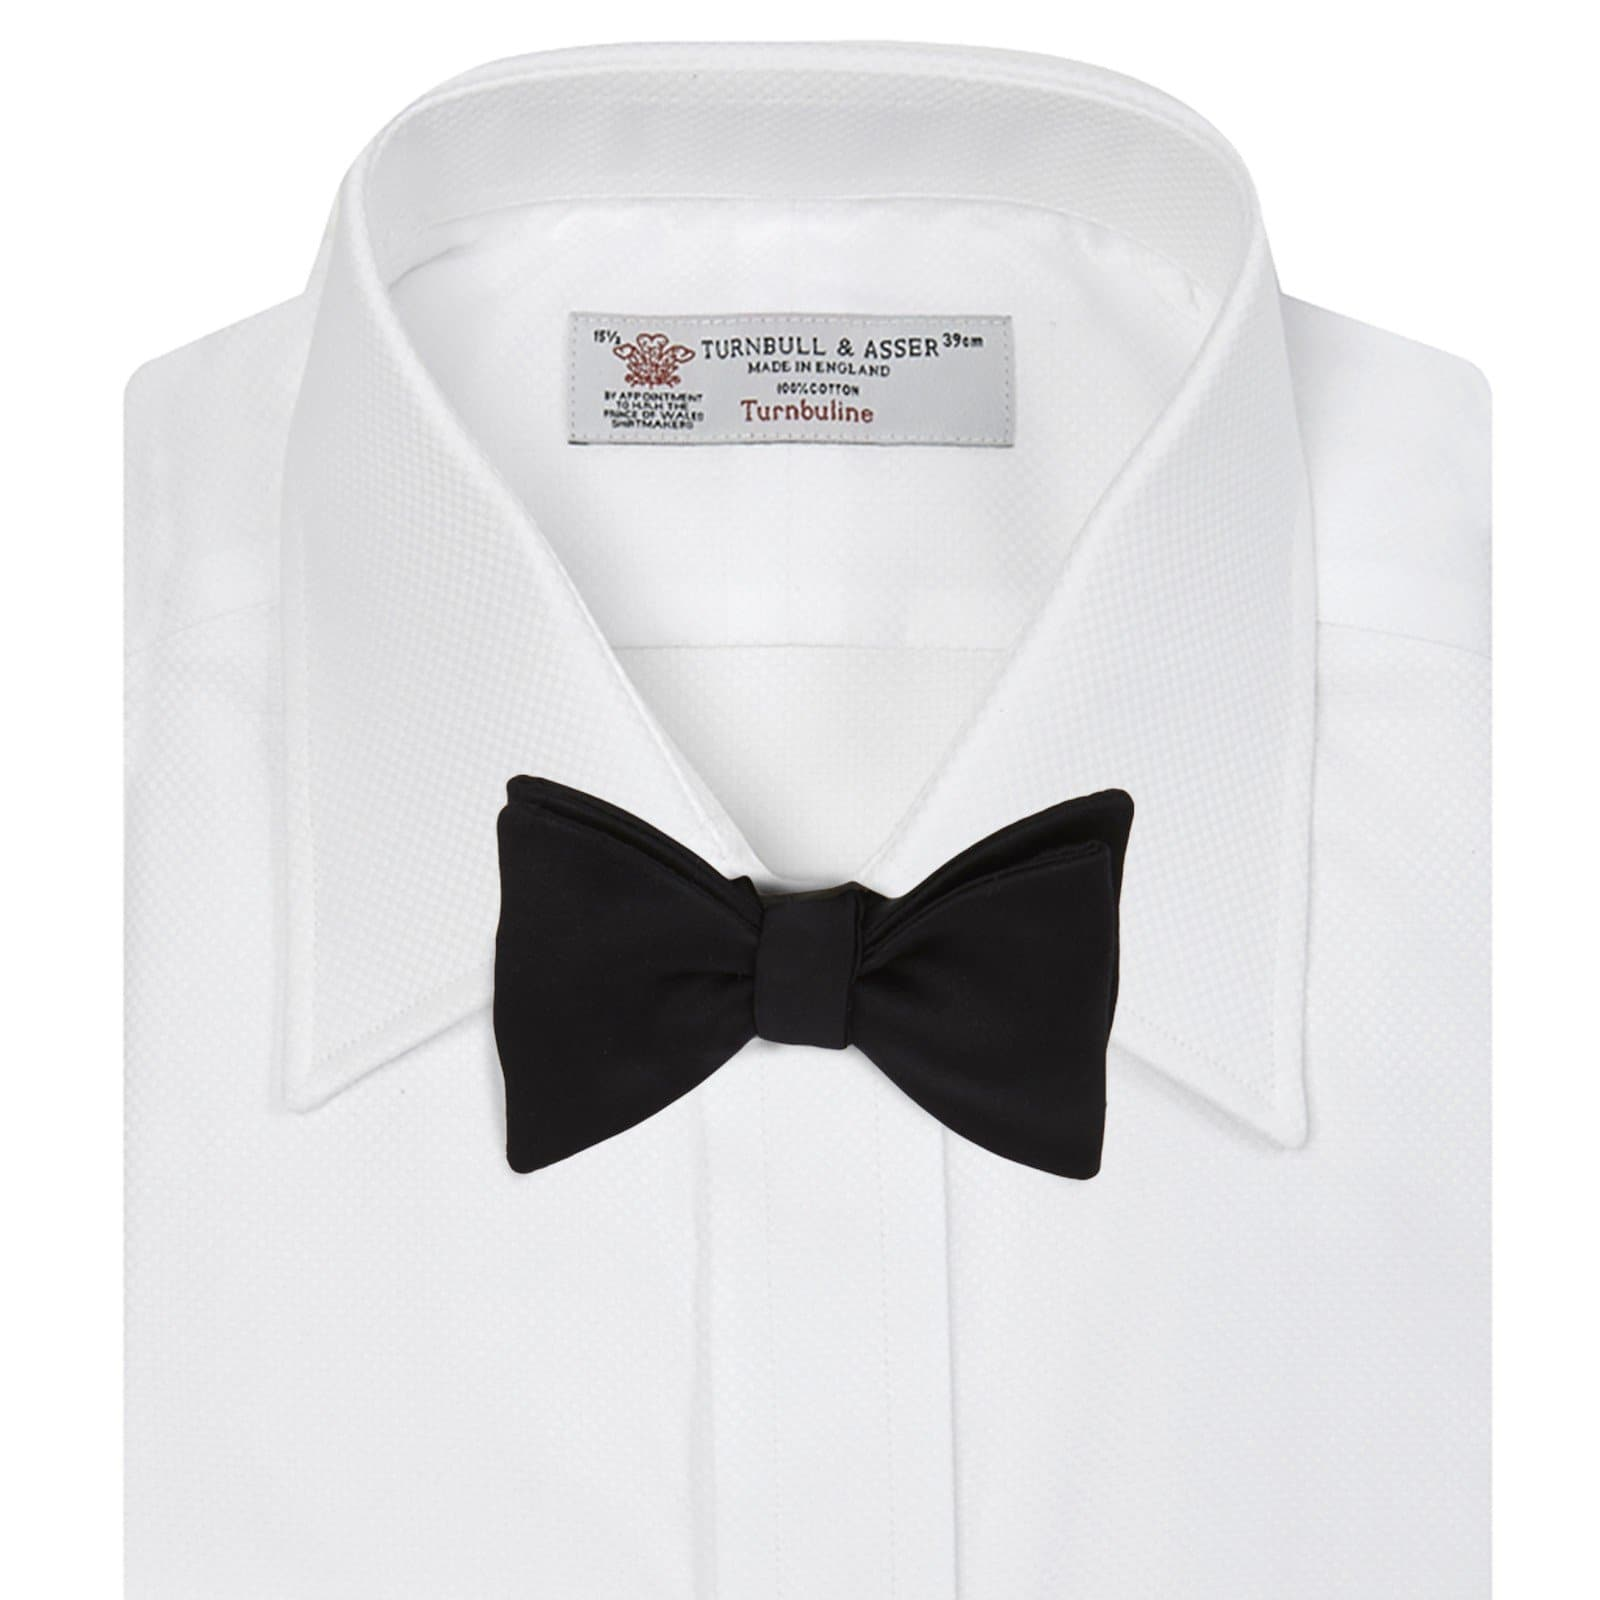 Dress Shirt By Turnbull & Asser - Casino Royale Edition - 007STORE